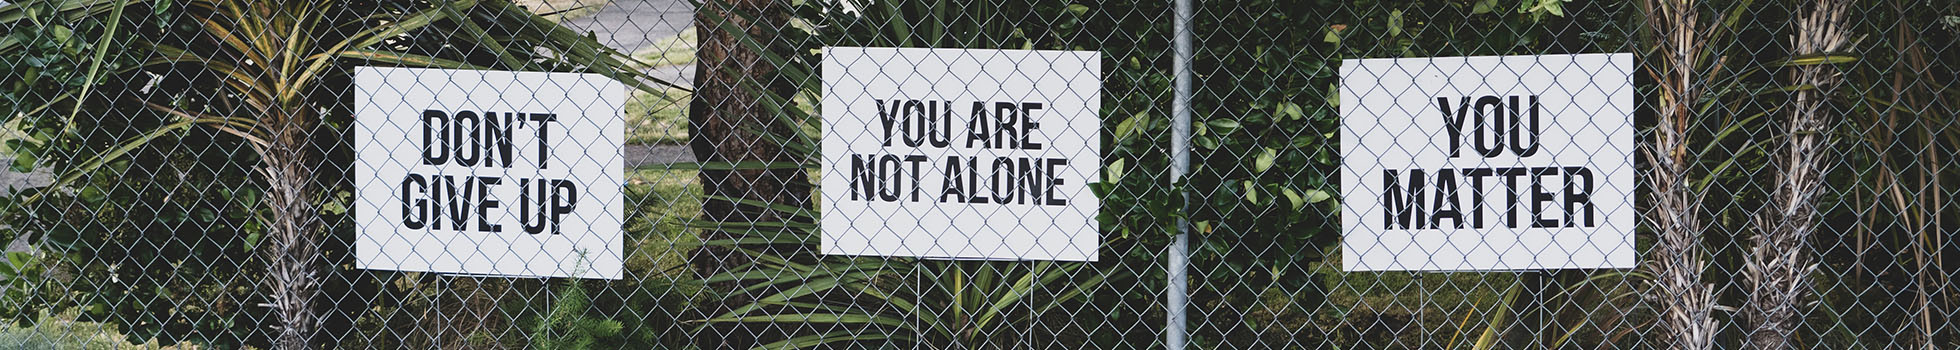 Fence with signs saying don't give up, you matter, and you are not alone.